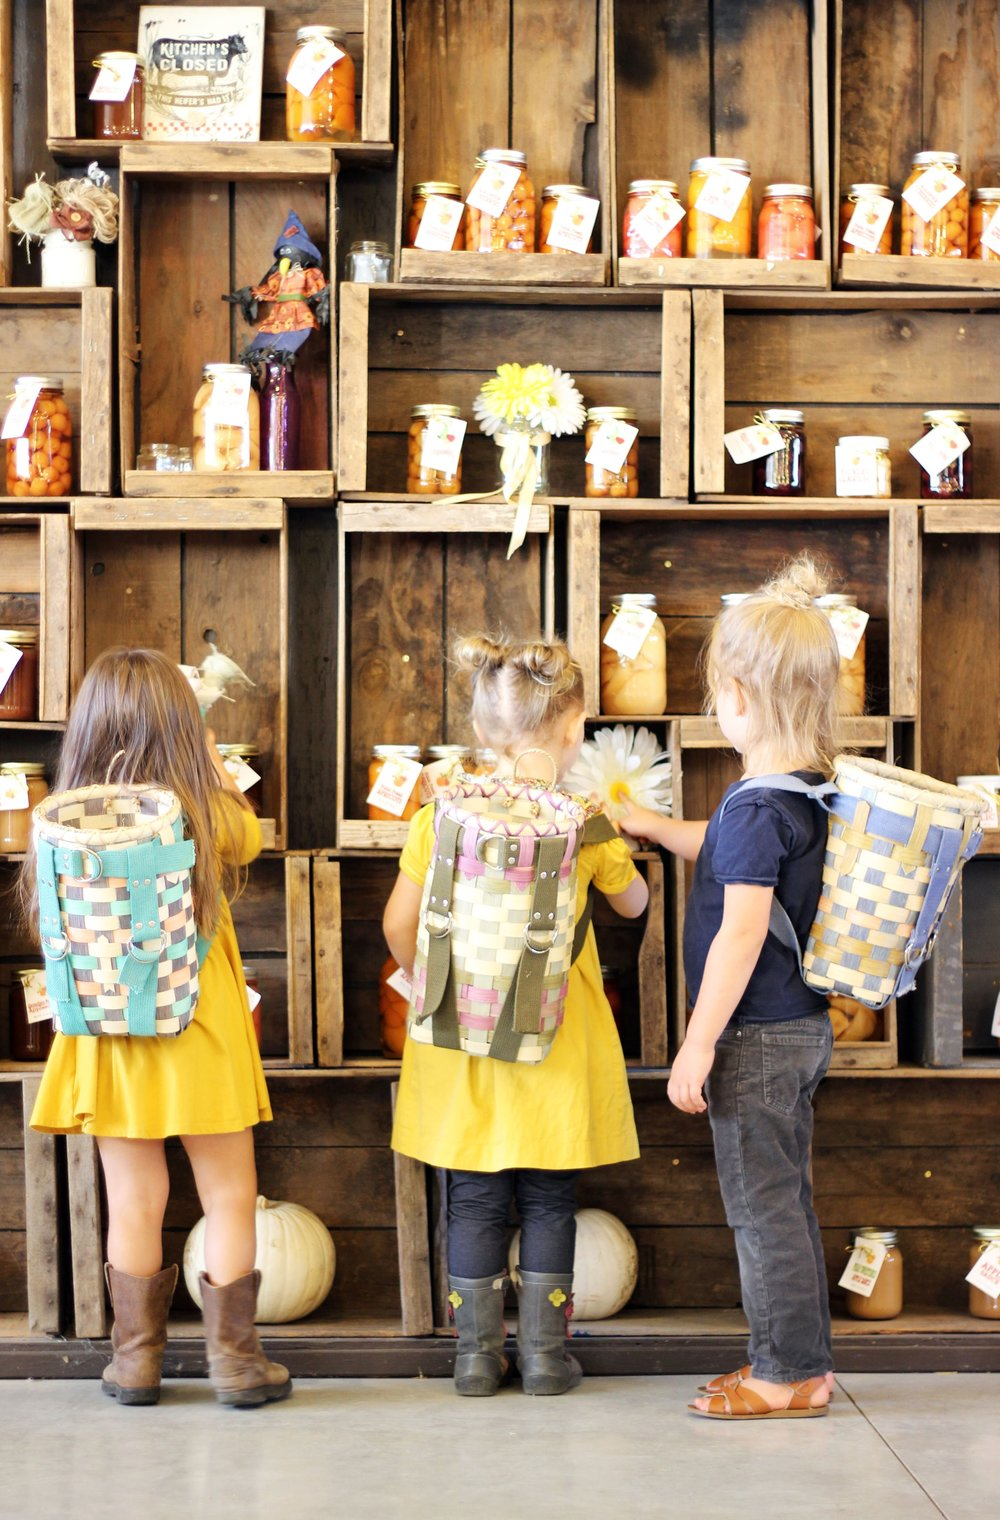 Little Hiker Packs at Rural Craft Revival